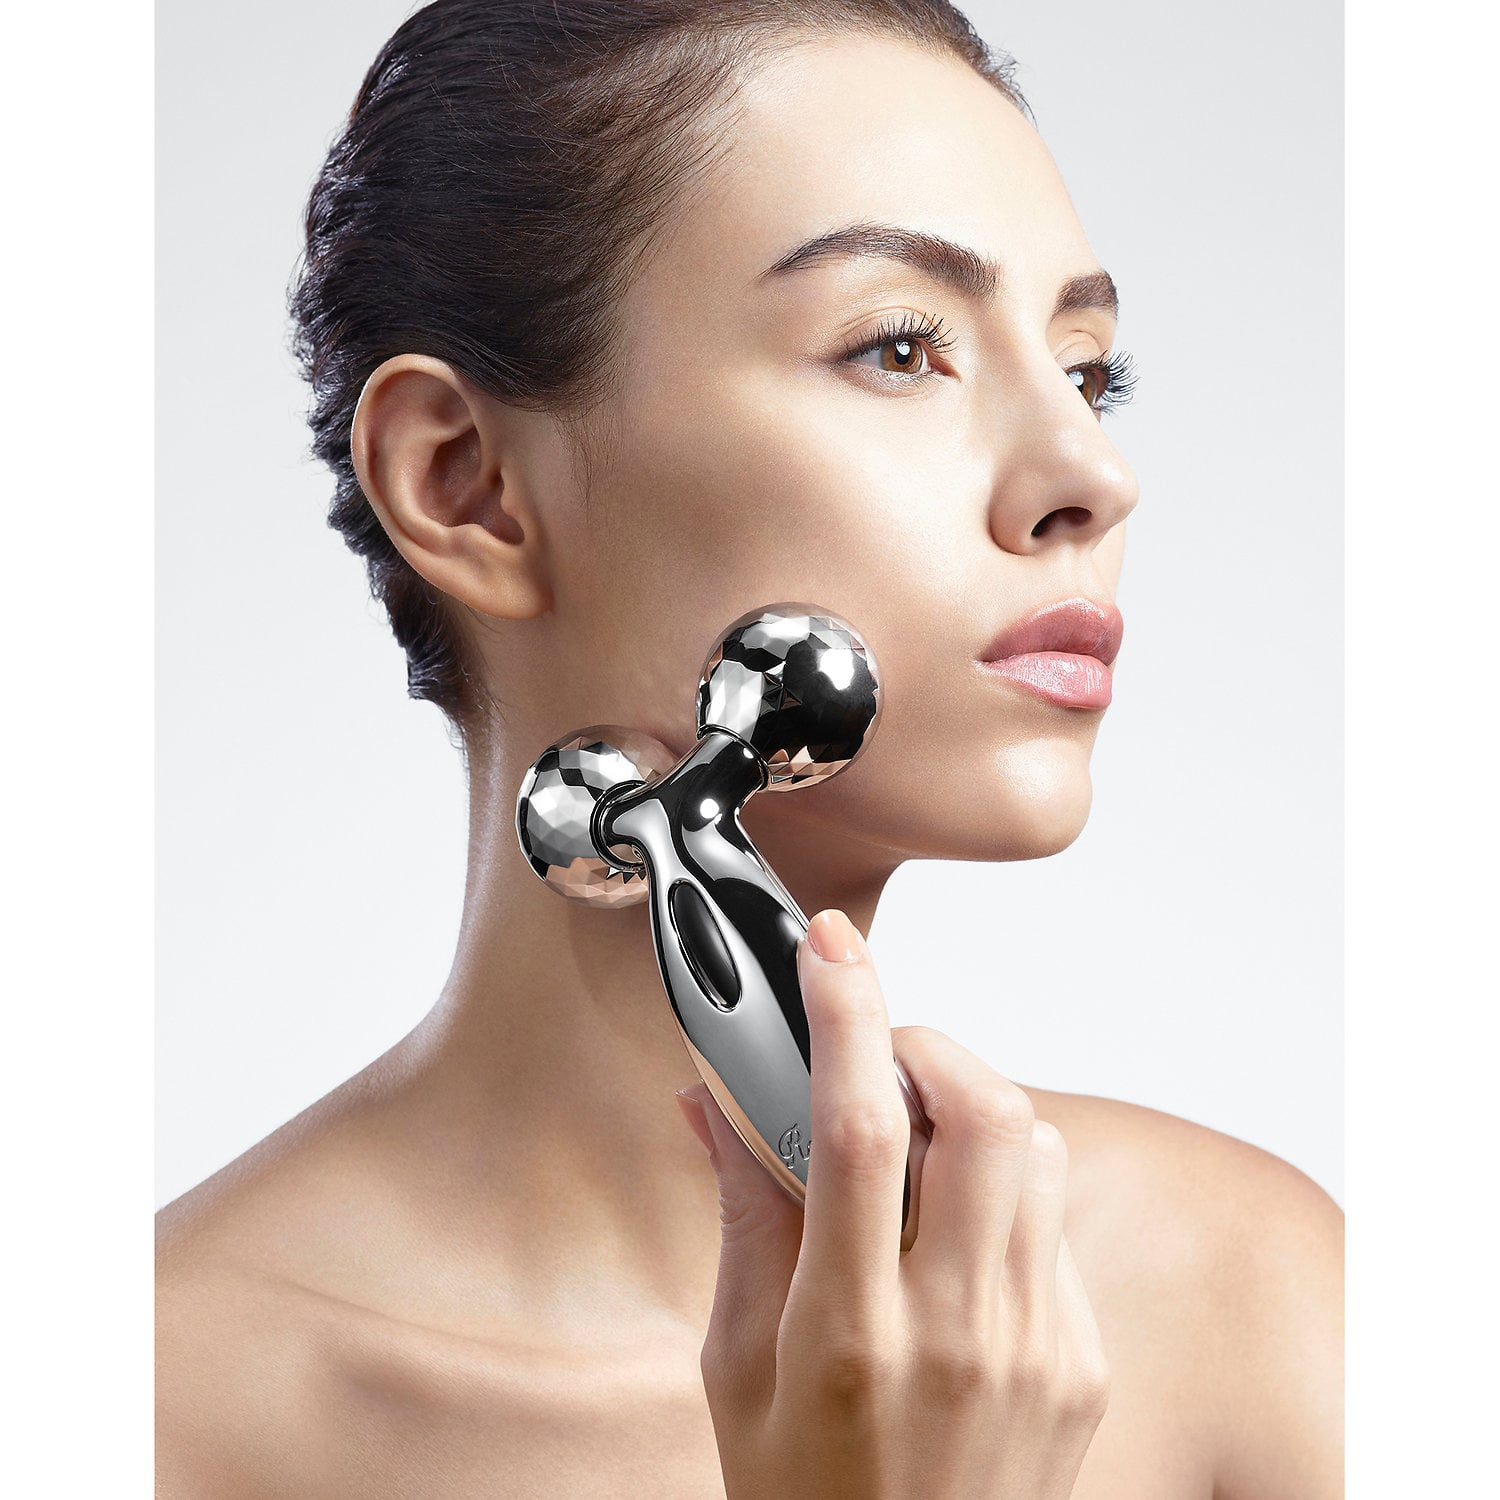 ReFa CARAT Face & Body Roller Reviews & Best Price For You